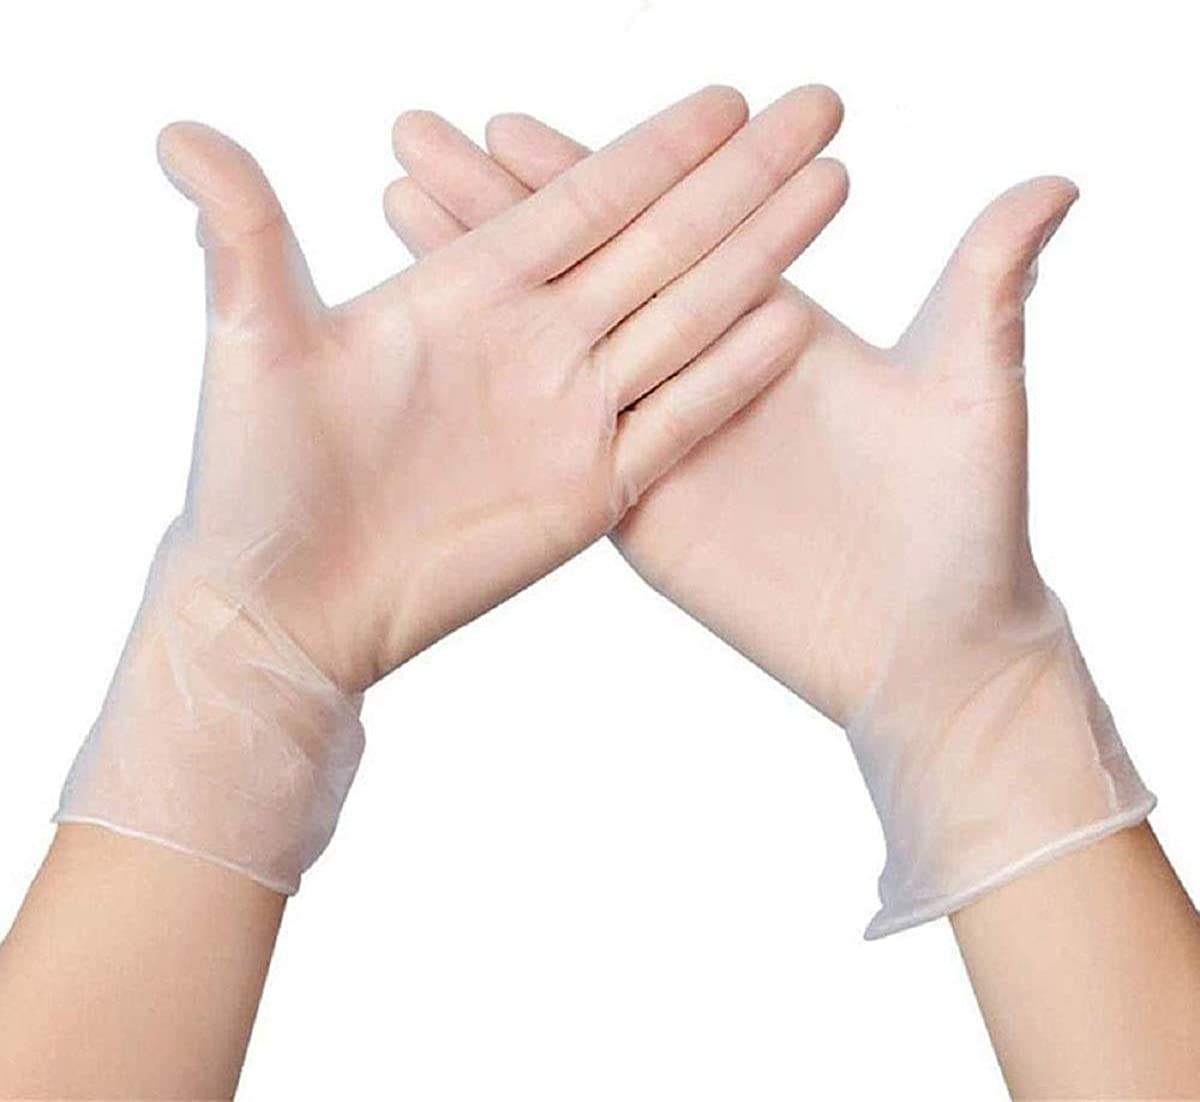 Soluo Nitrile Disposable Gloves | Latex and Powder Free | Disposable, Ultra-Strong, Clear | Food Handling Use